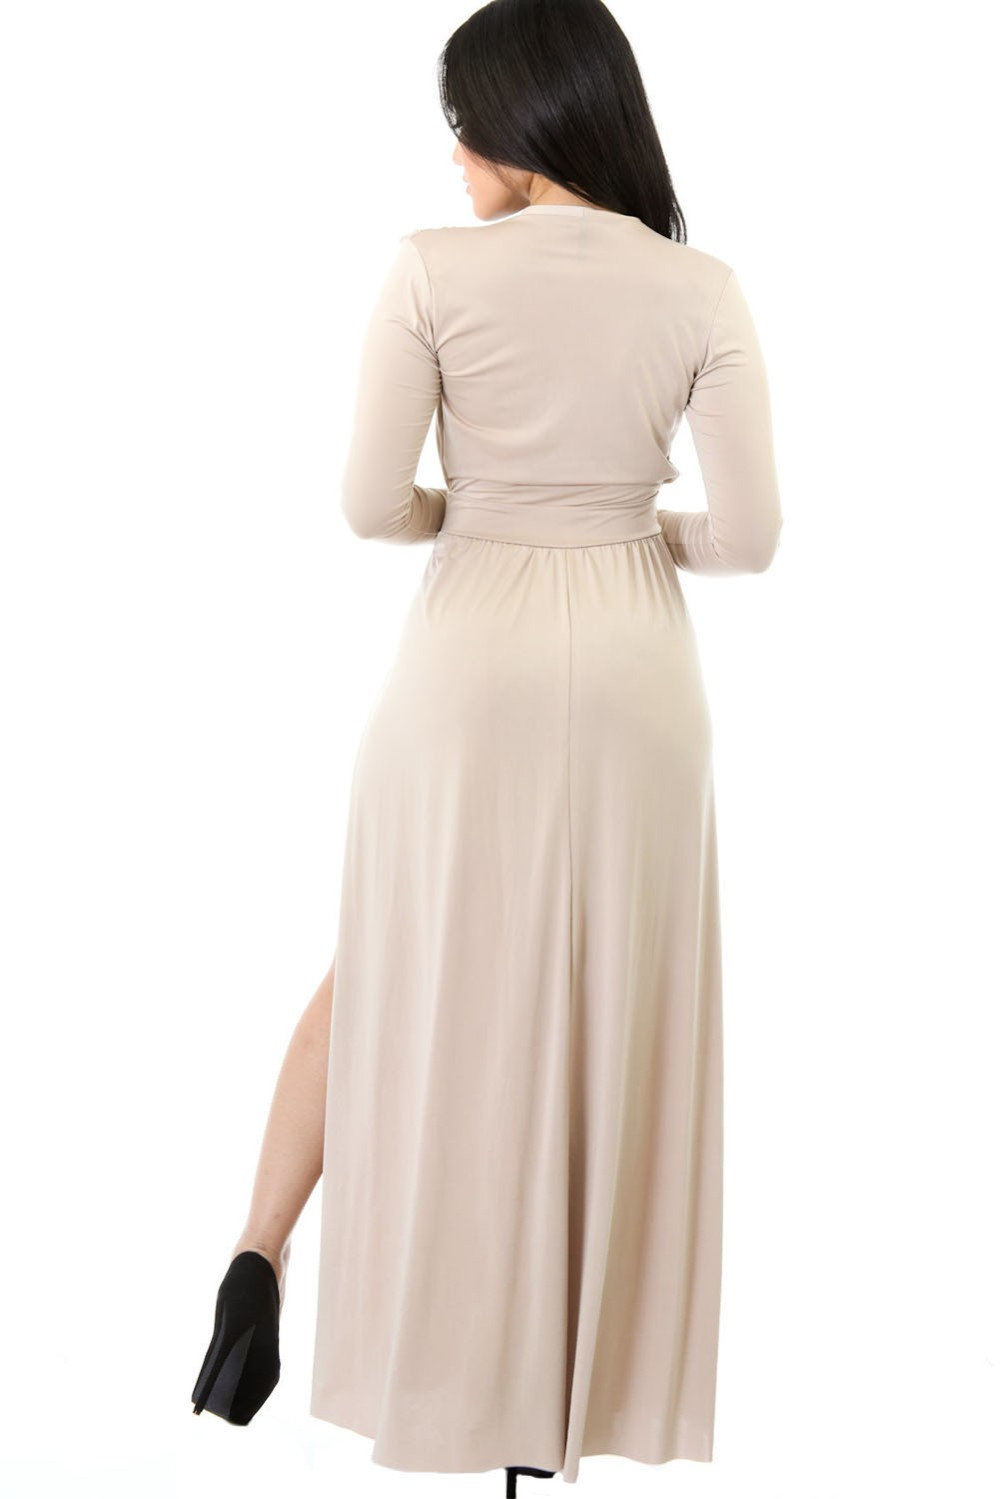 Apricot-Super-Classy-Long-Sleeves-Double-Slit-Long-Maxi-Dress-LC61282-18-2